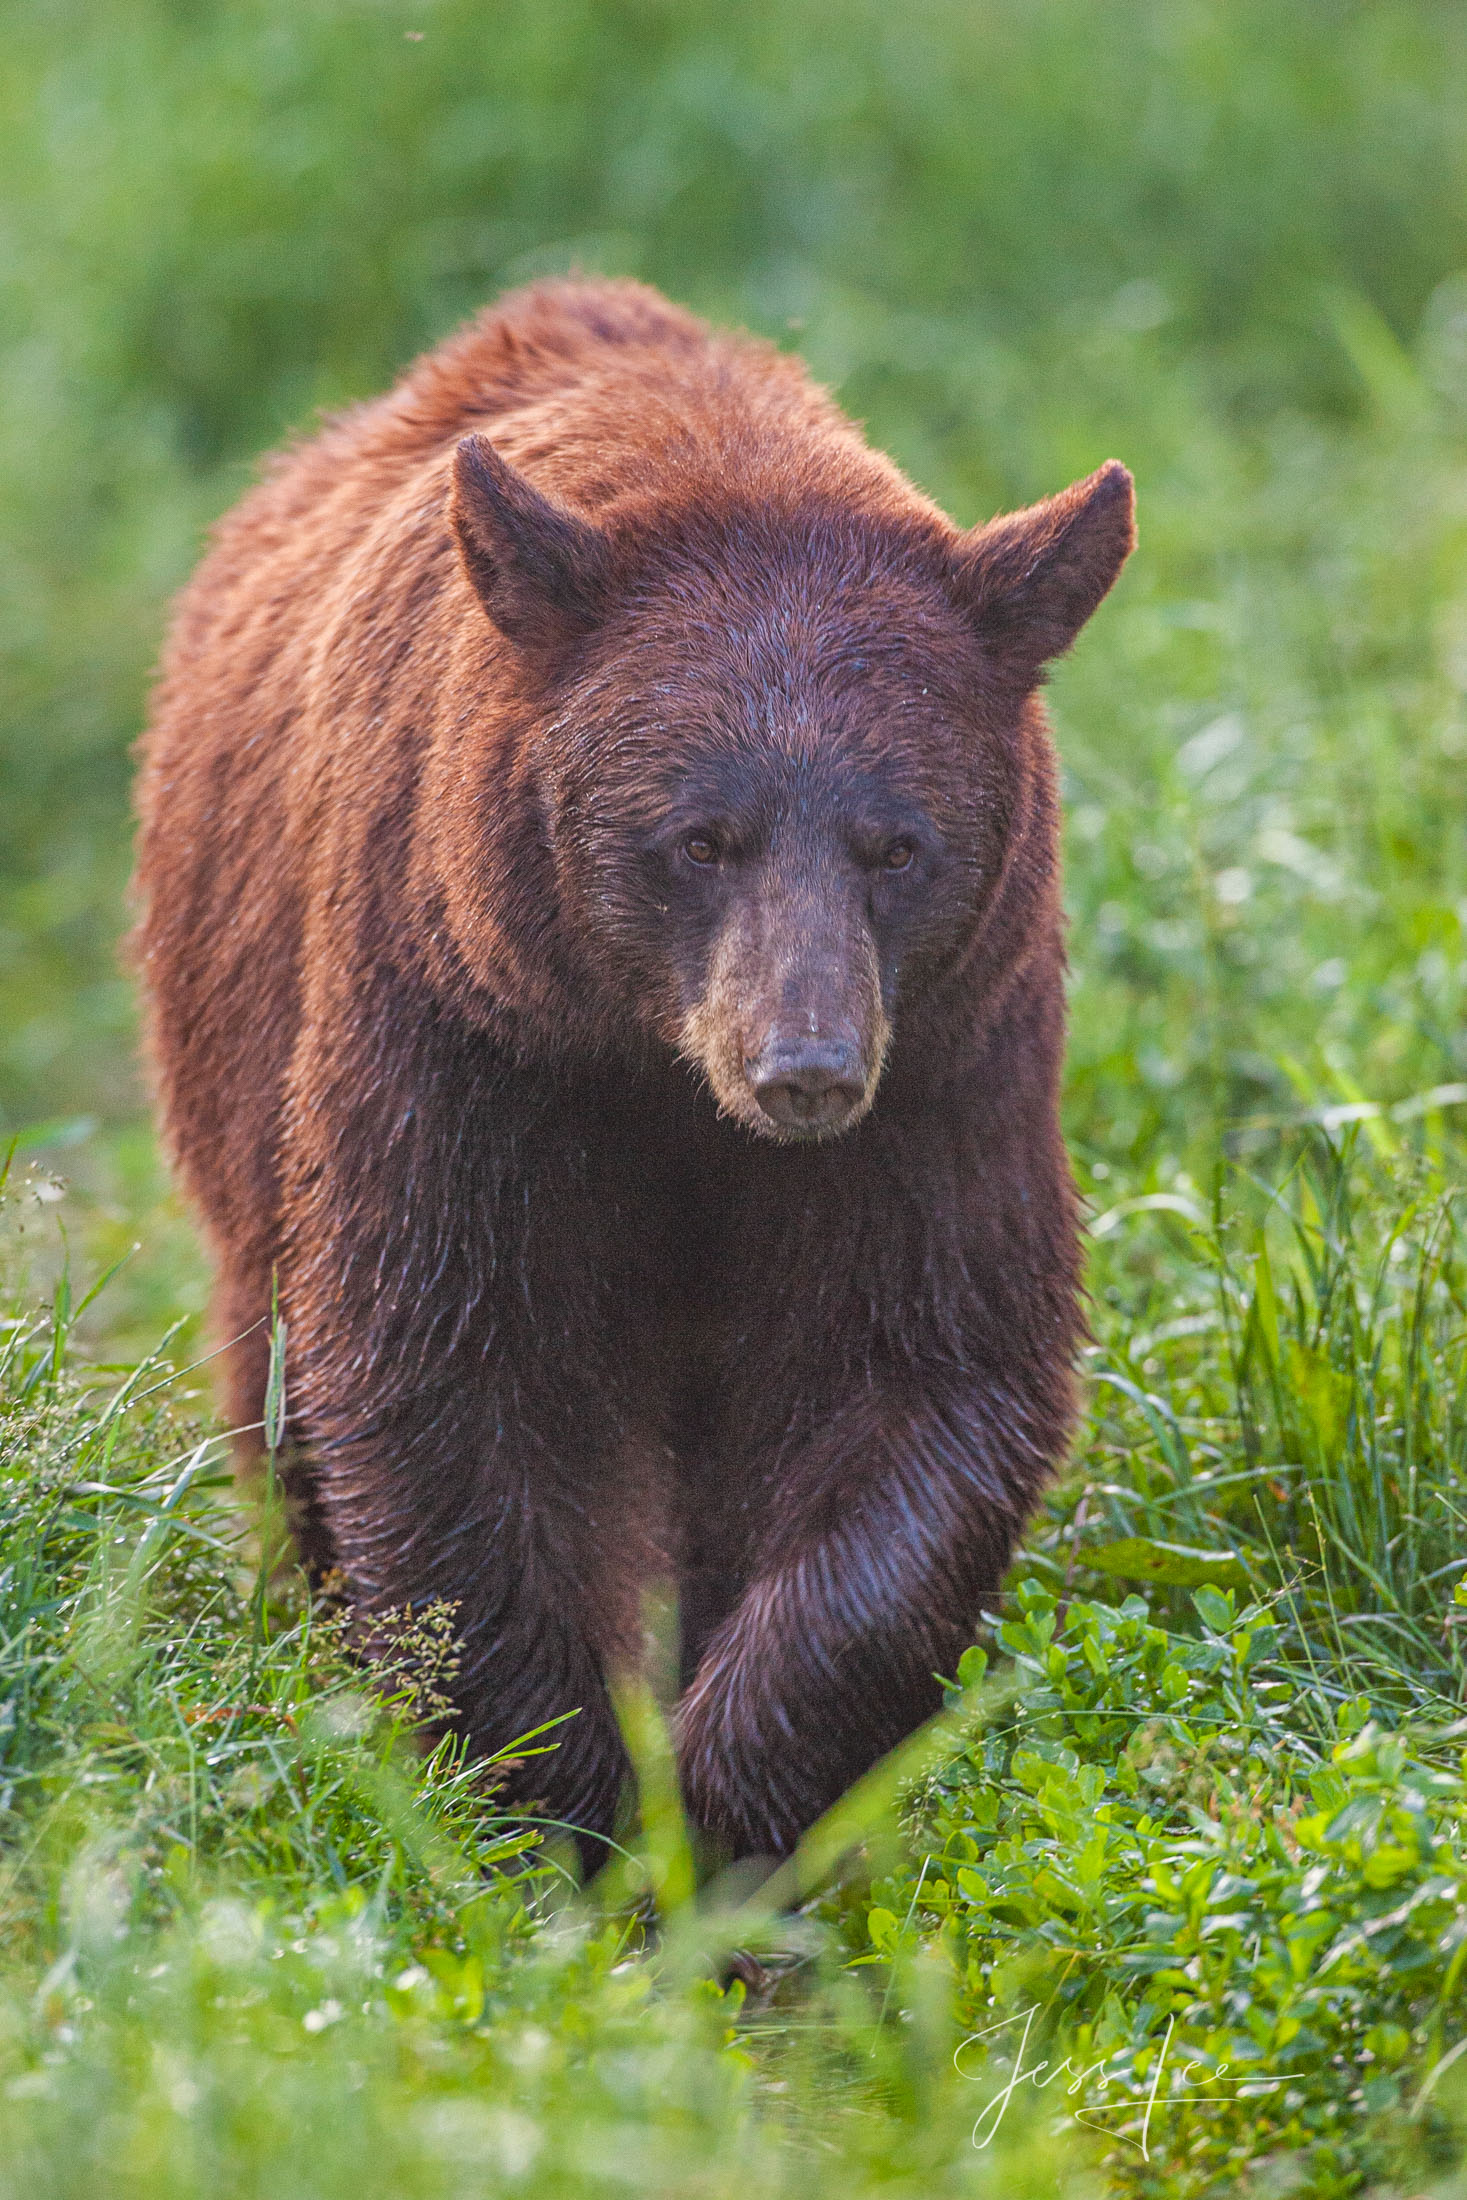 Red Black Bear Photo  Limited Edition Print. These bear photographs are offered as high-quality prints for sale as created by...